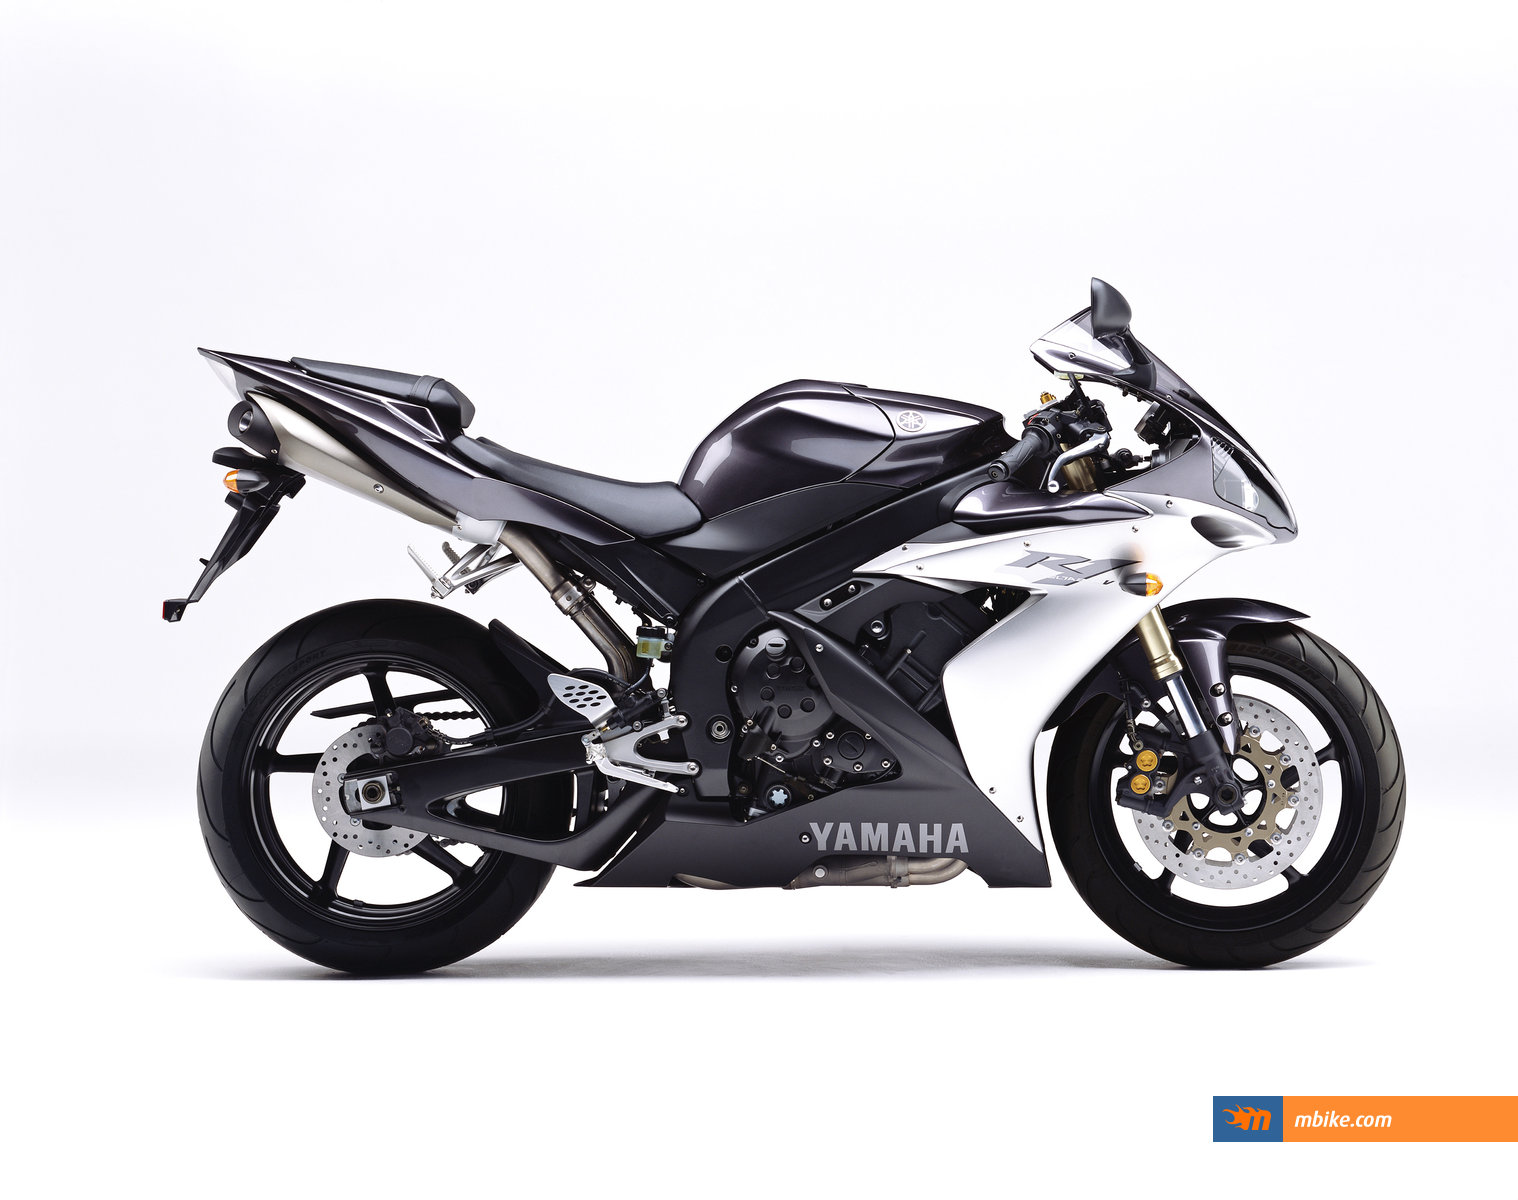 2004 yamaha yzf r1 moto zombdrive com. Black Bedroom Furniture Sets. Home Design Ideas